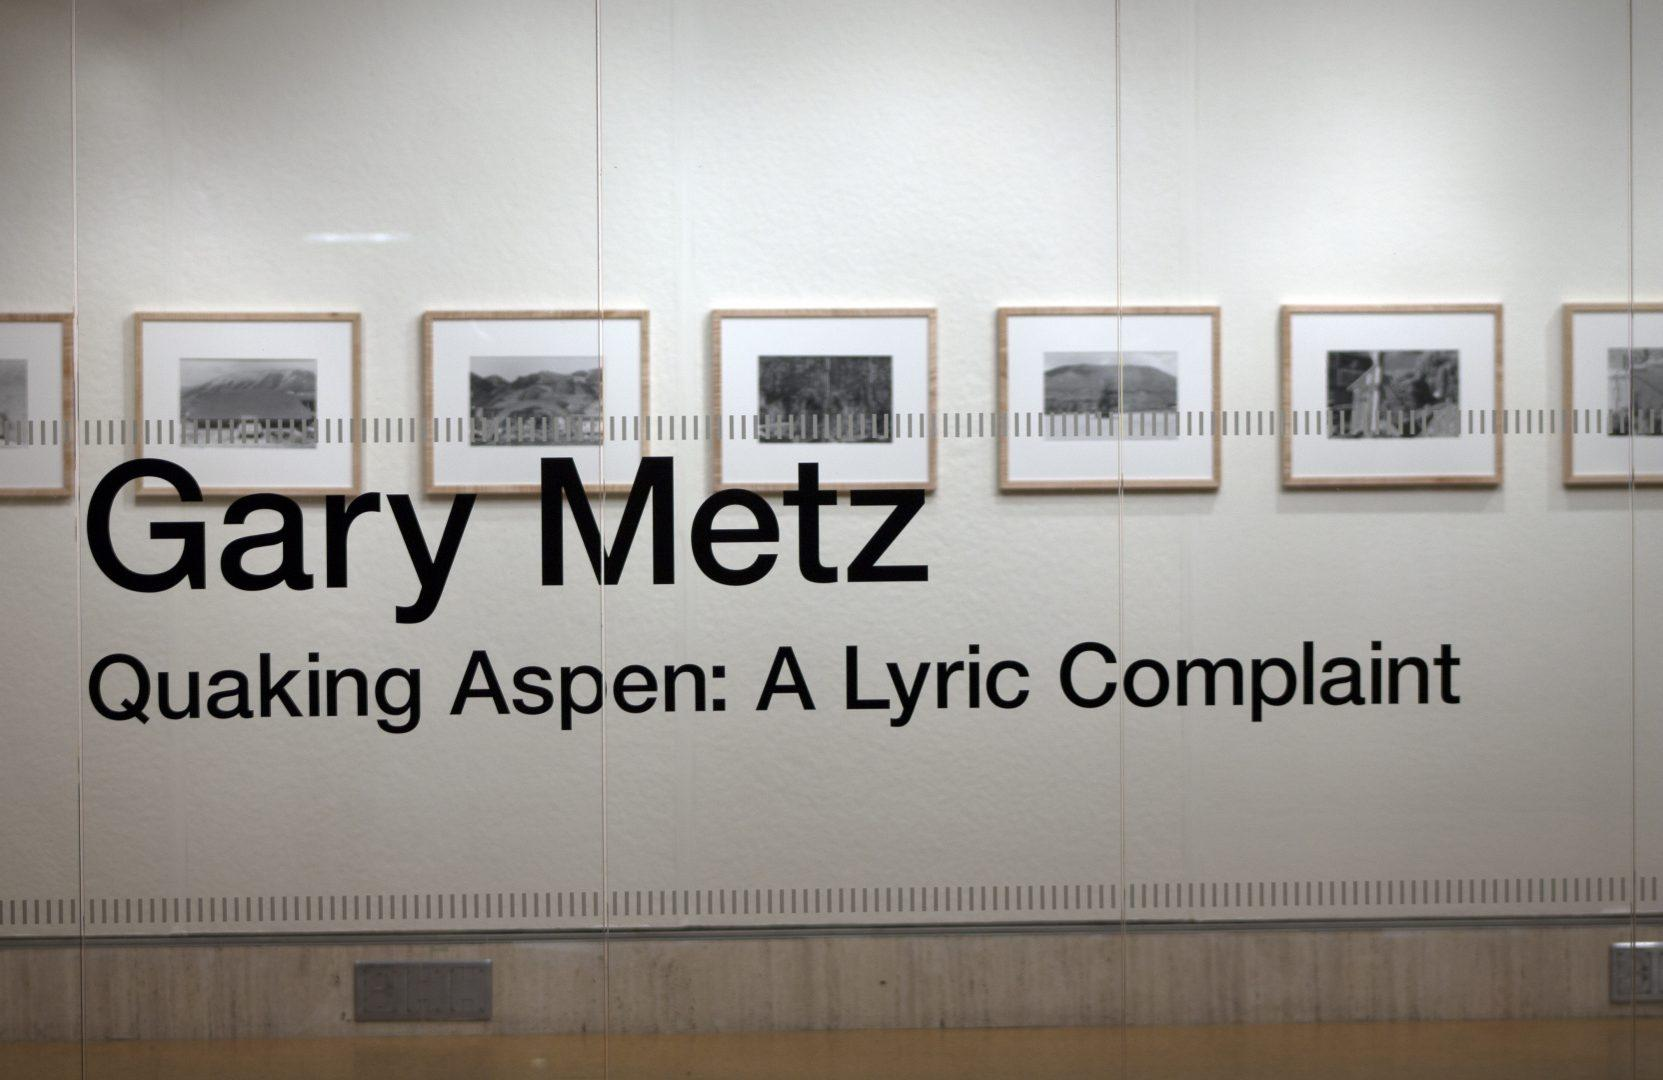 Photographer Gary Metz's Work on Display at FCLC's Butler Gallery